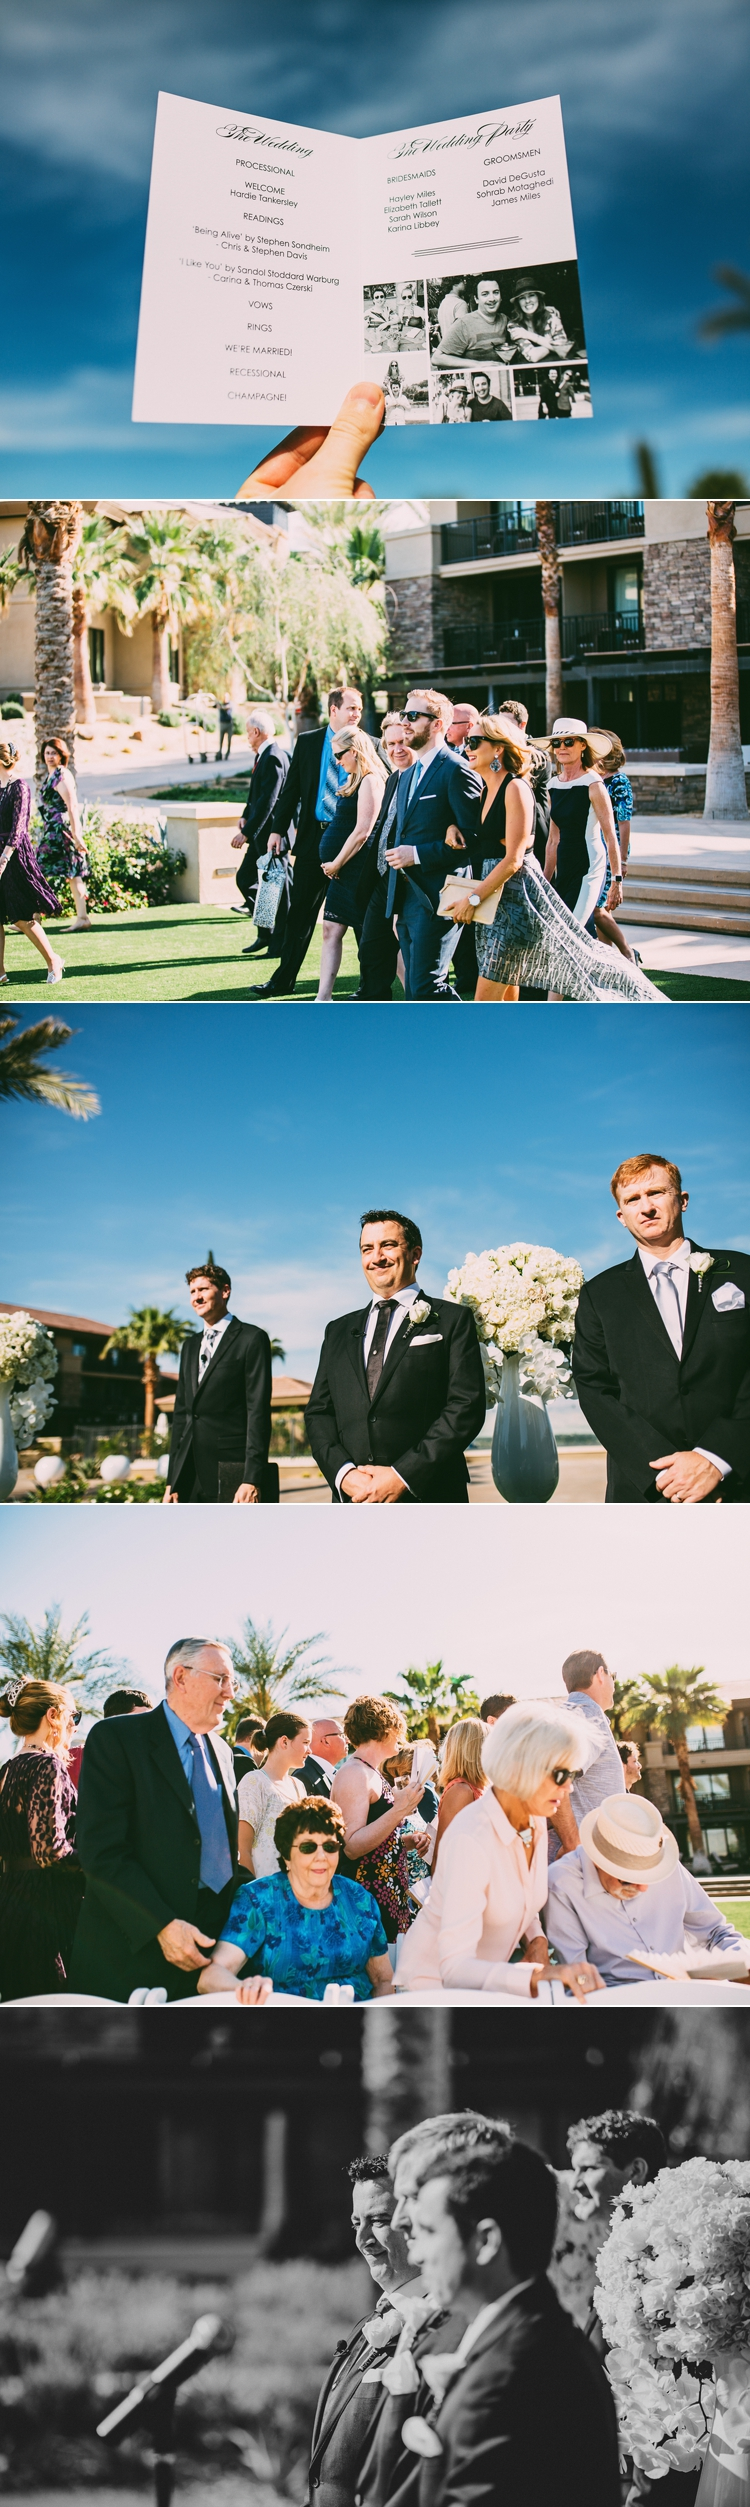 Wedding Photos At Ritz Carlton Rancho Mirage